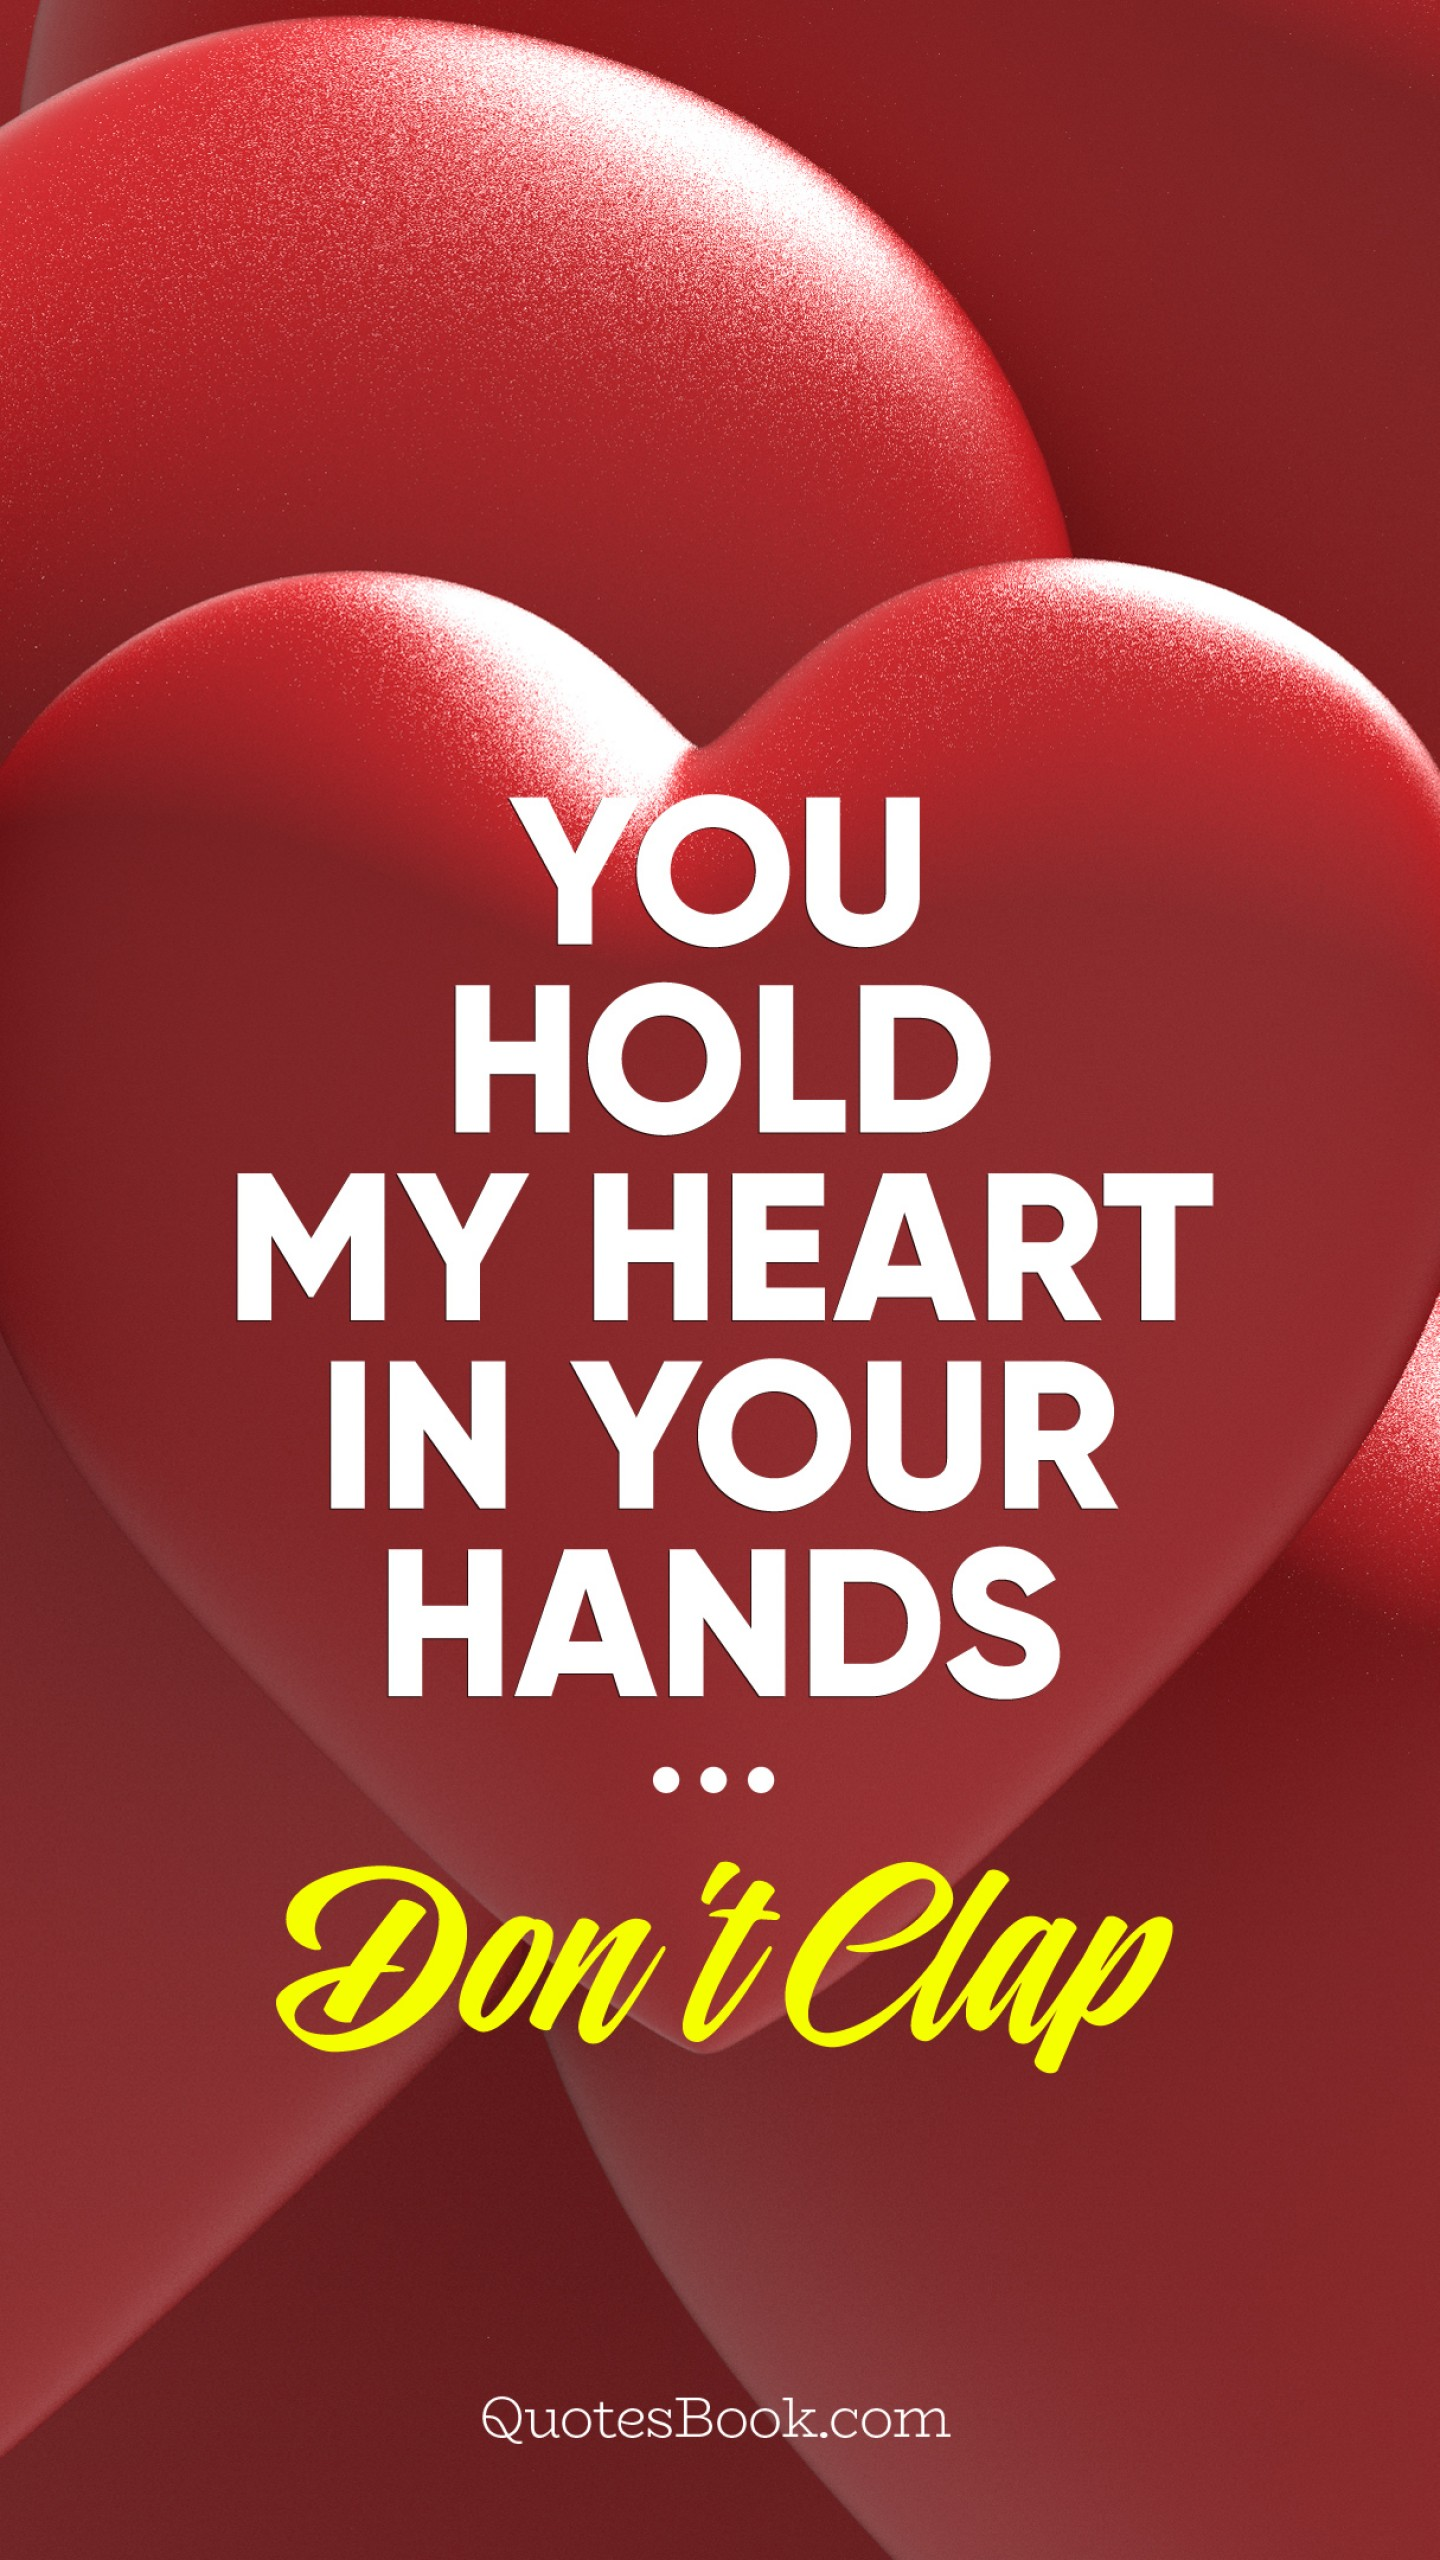 You hold my heart in your hands. Dont clap - QuotesBook